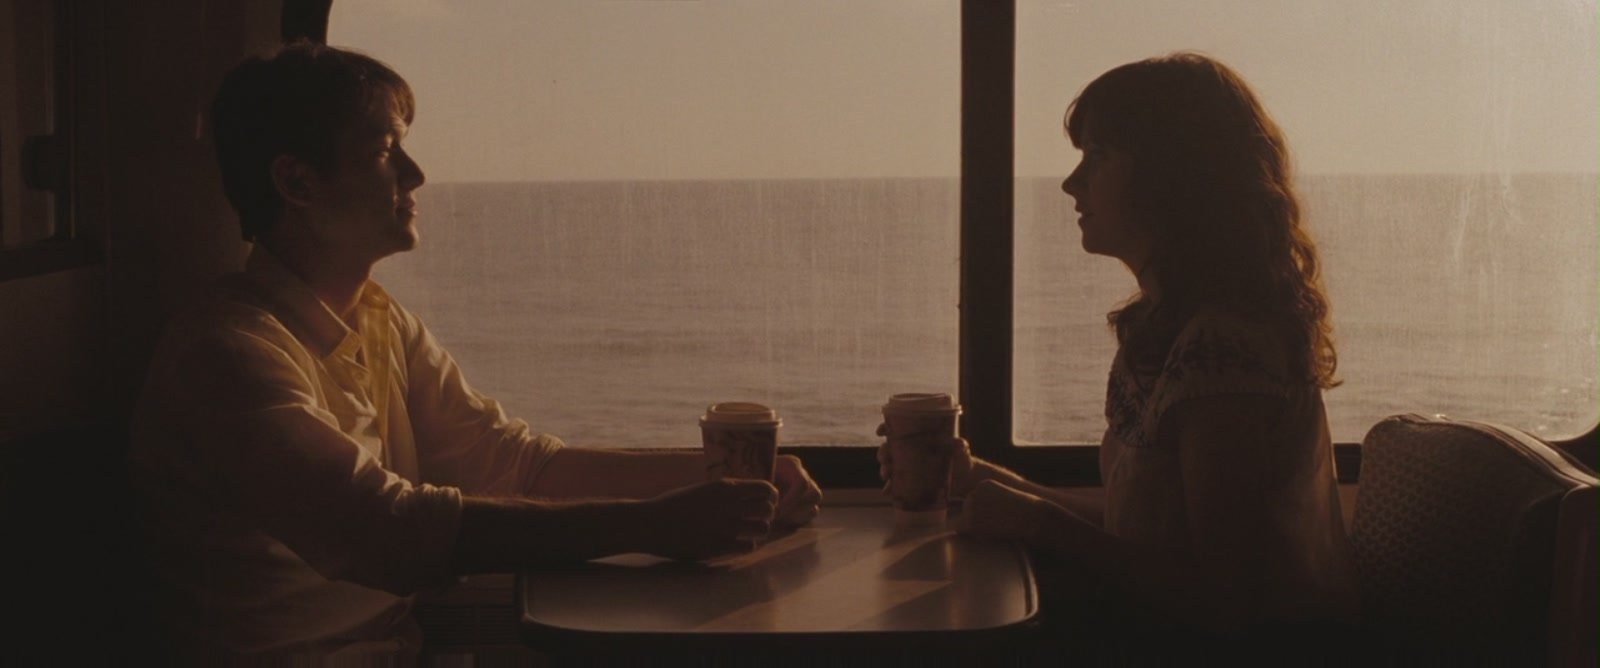 5 Films that Remind You How Single, Sad and Lonely You Are